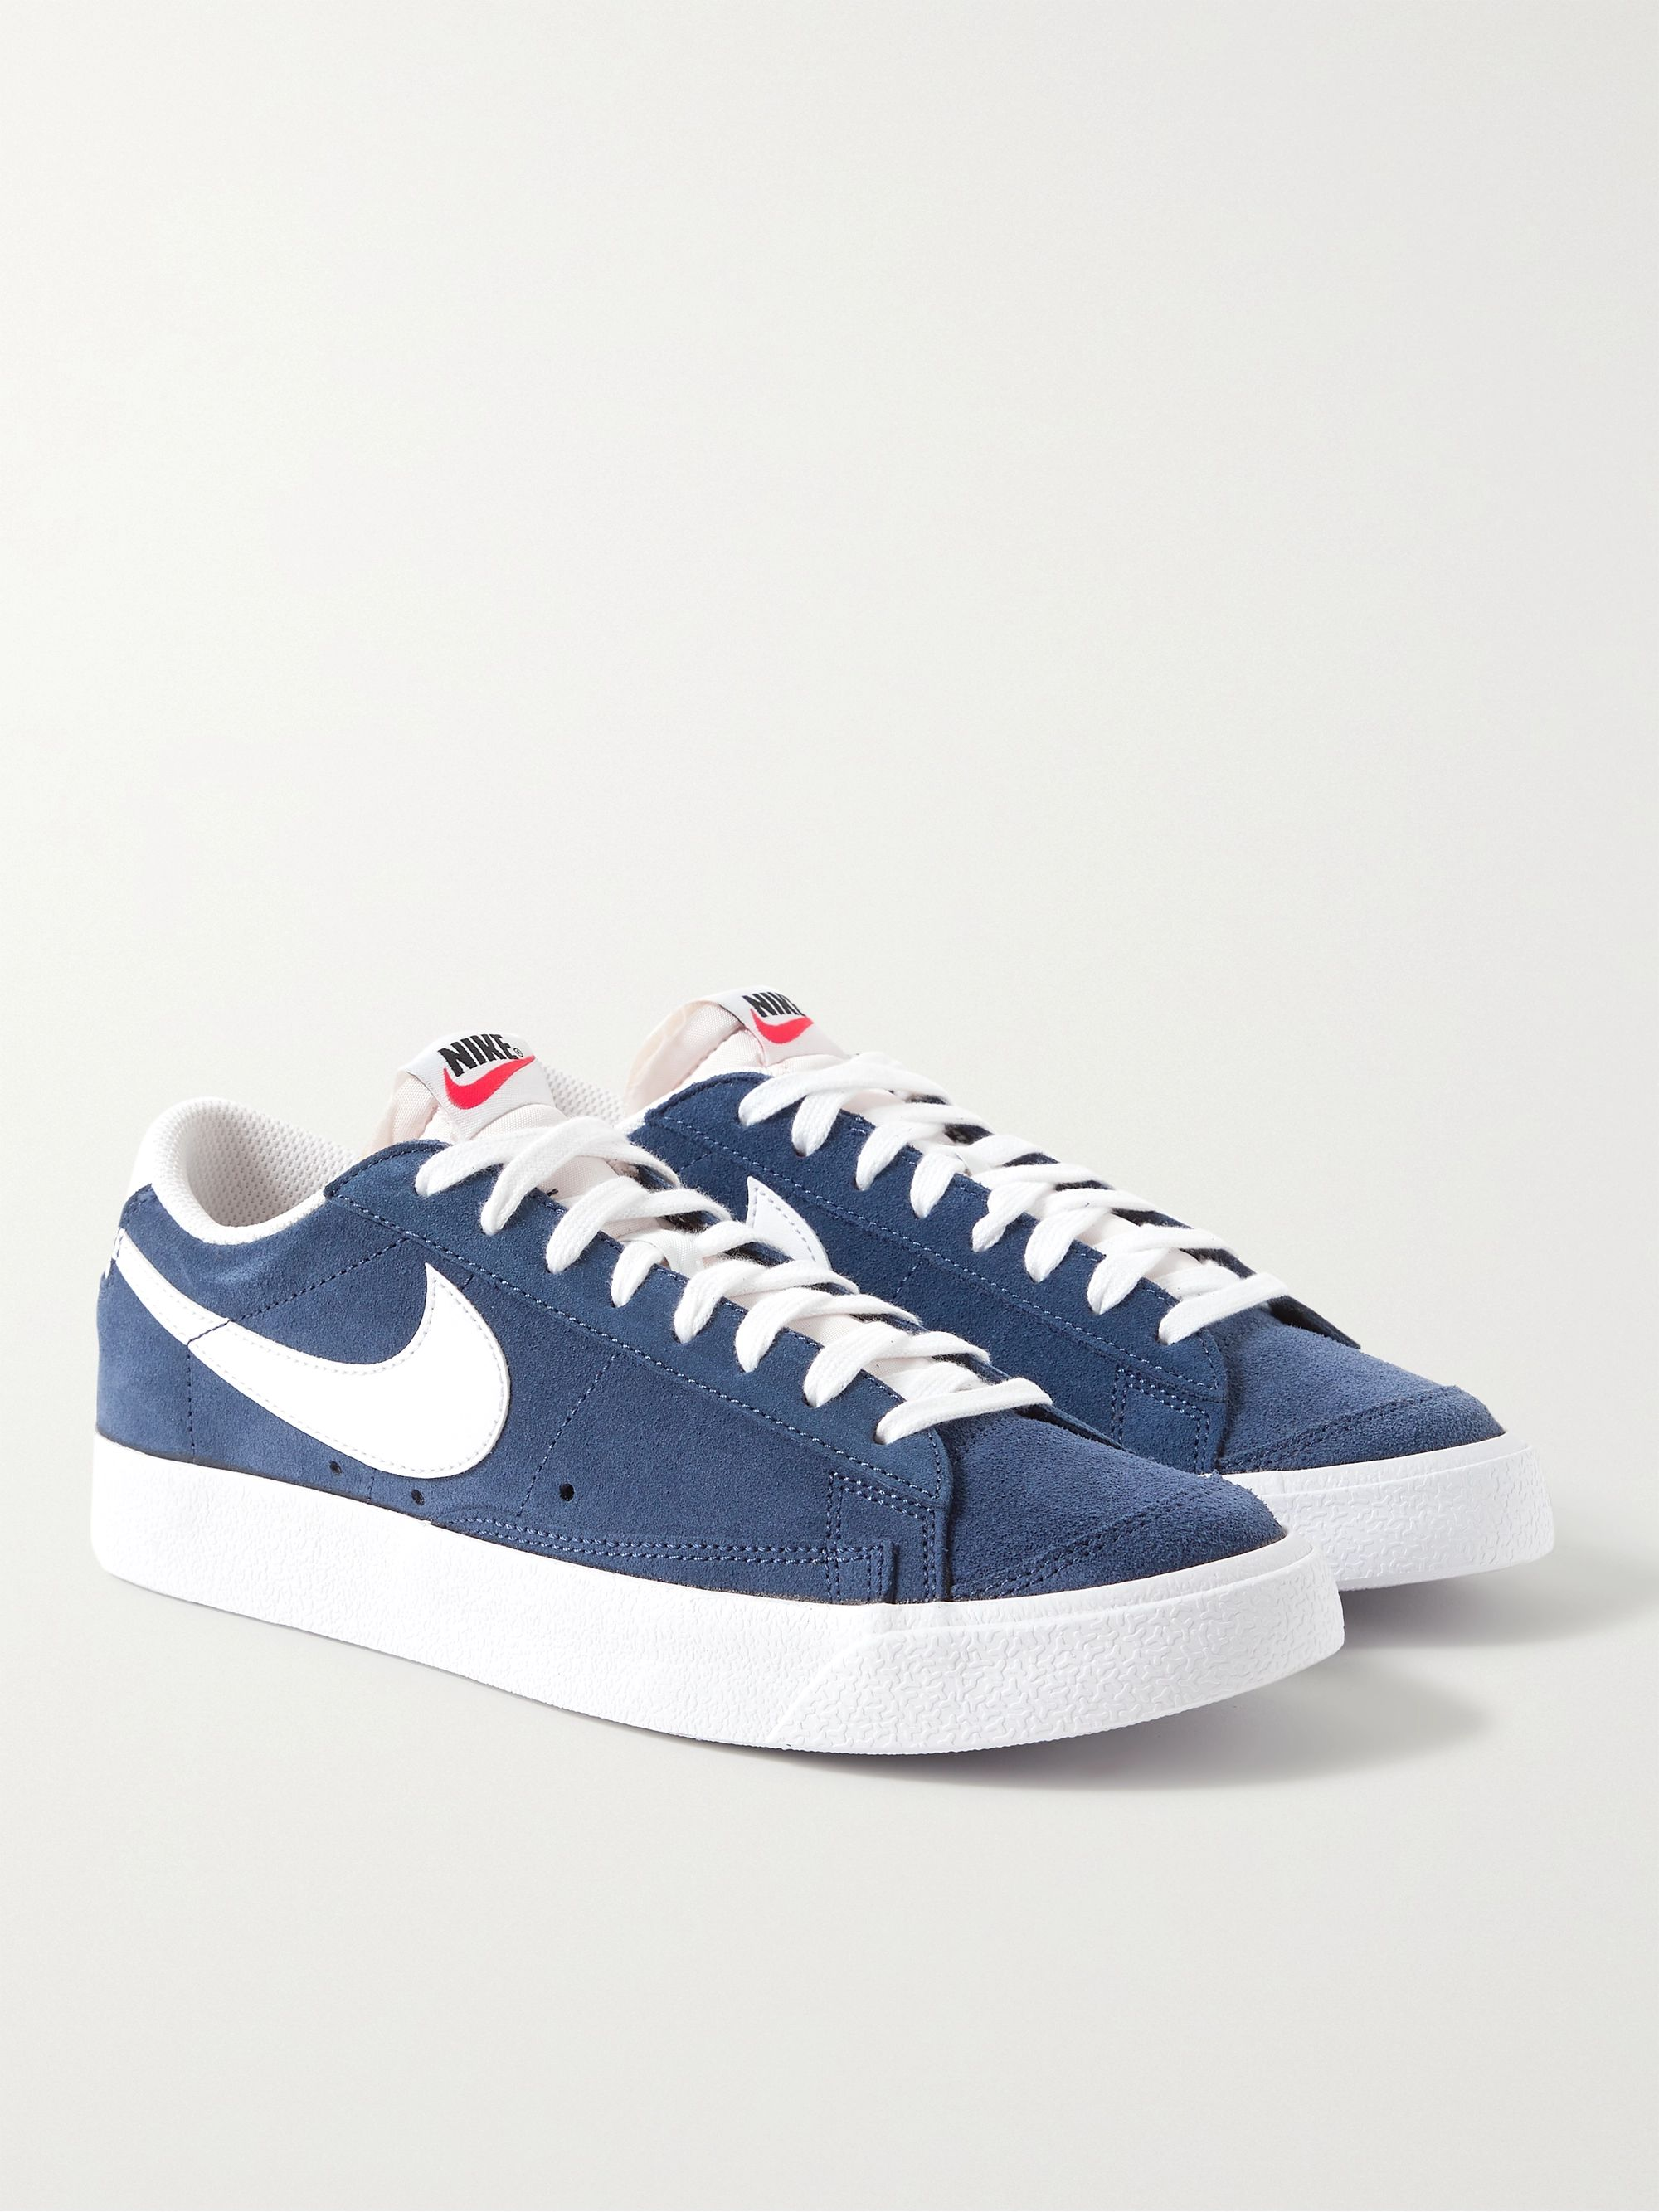 NIKE Blazer Low 77 Leather-Trimmed Suede Sneakers